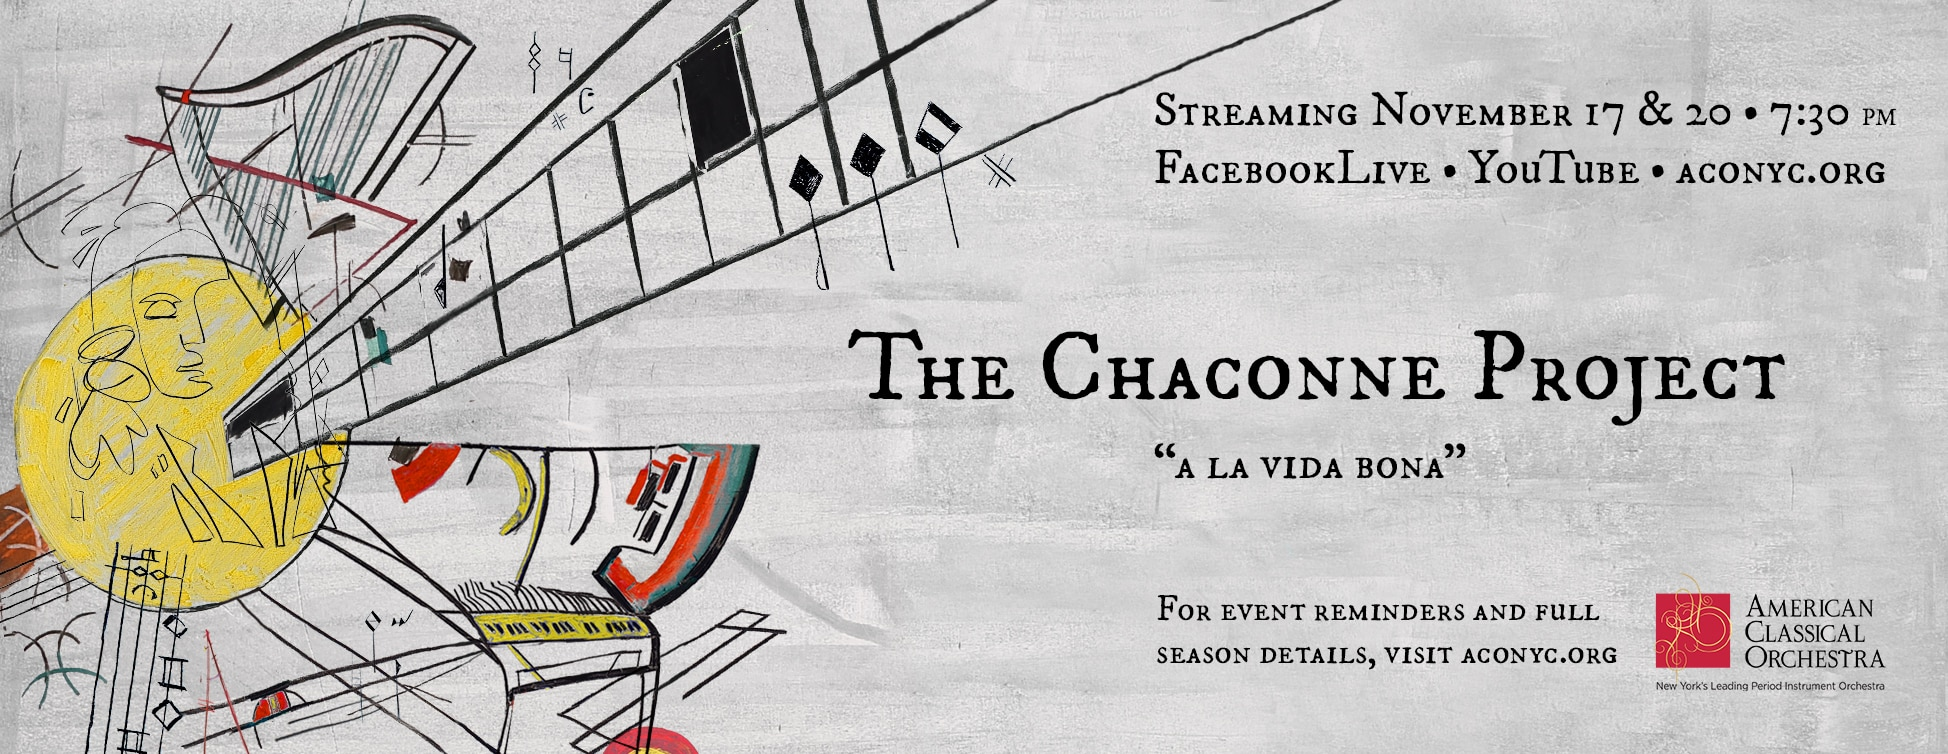 Chaconne Poster copy (1)